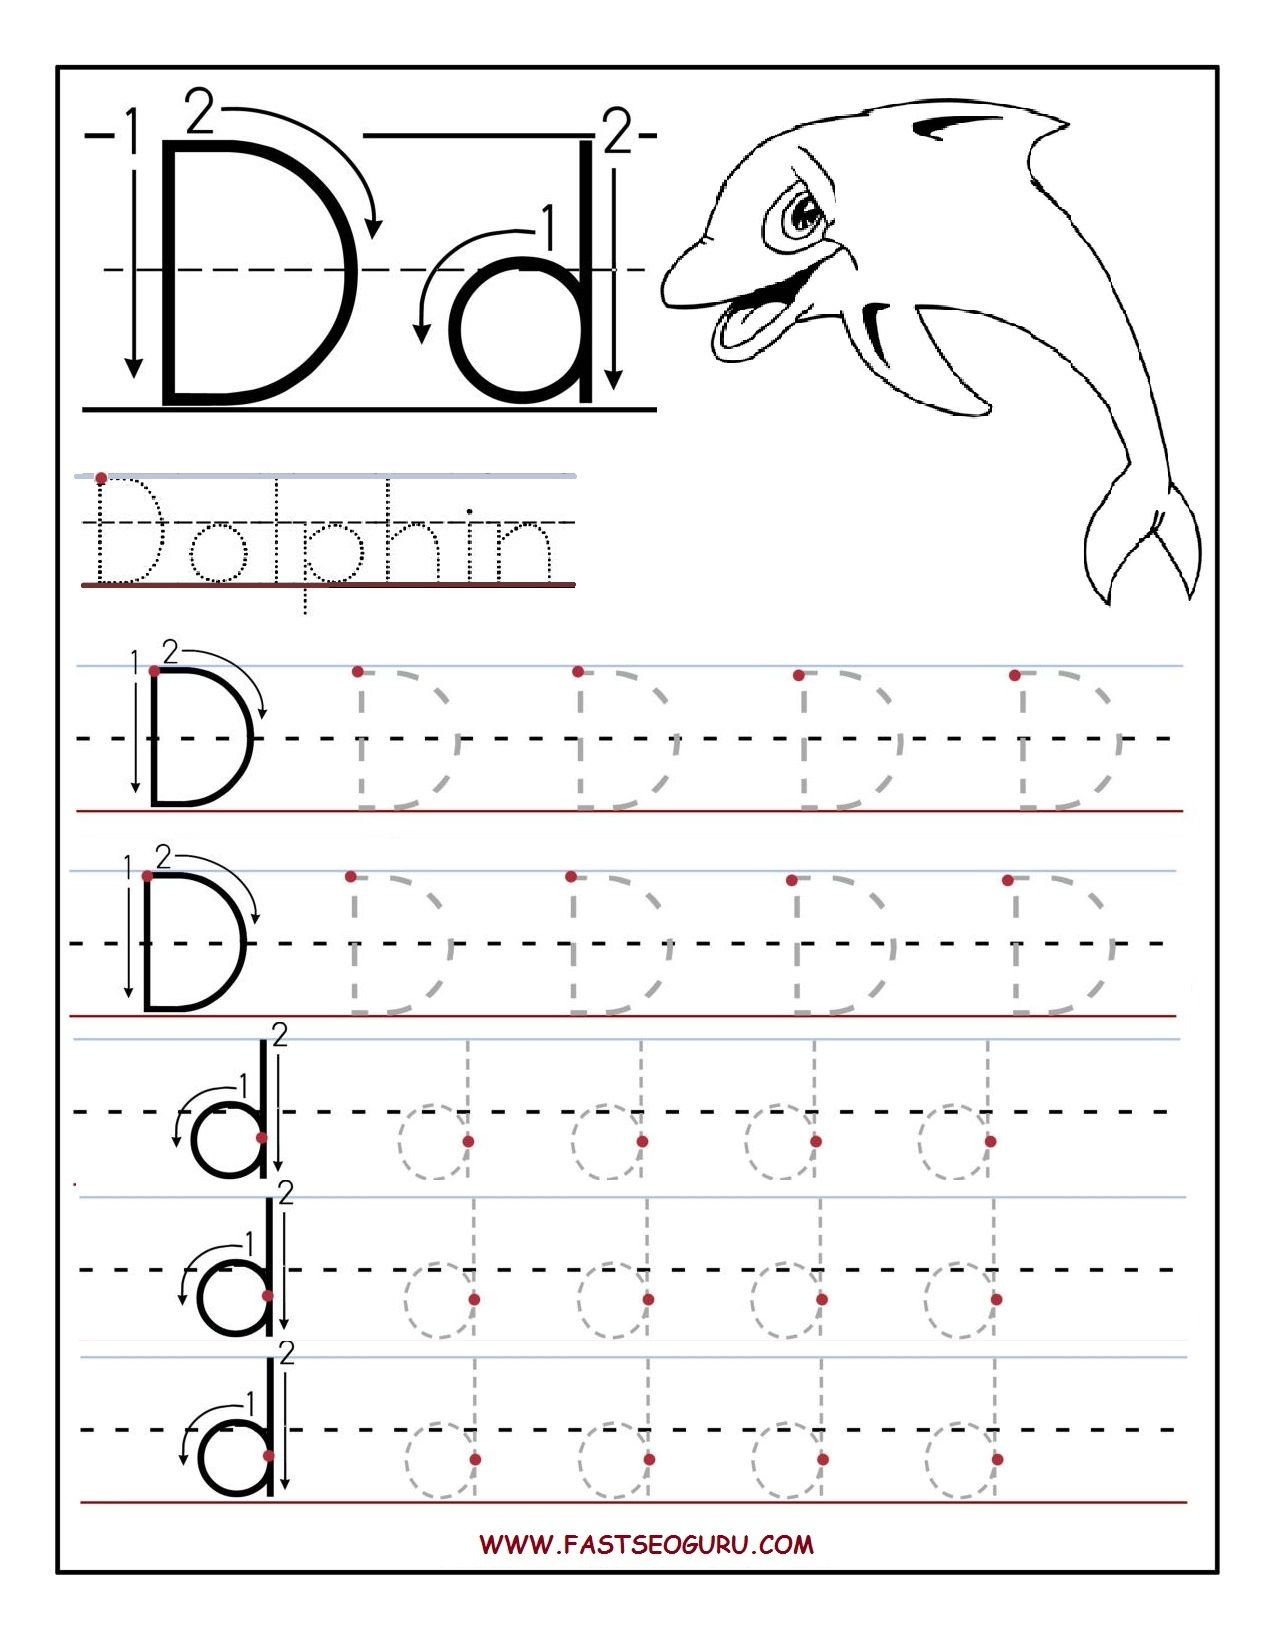 Tracing Letter Dd Worksheet